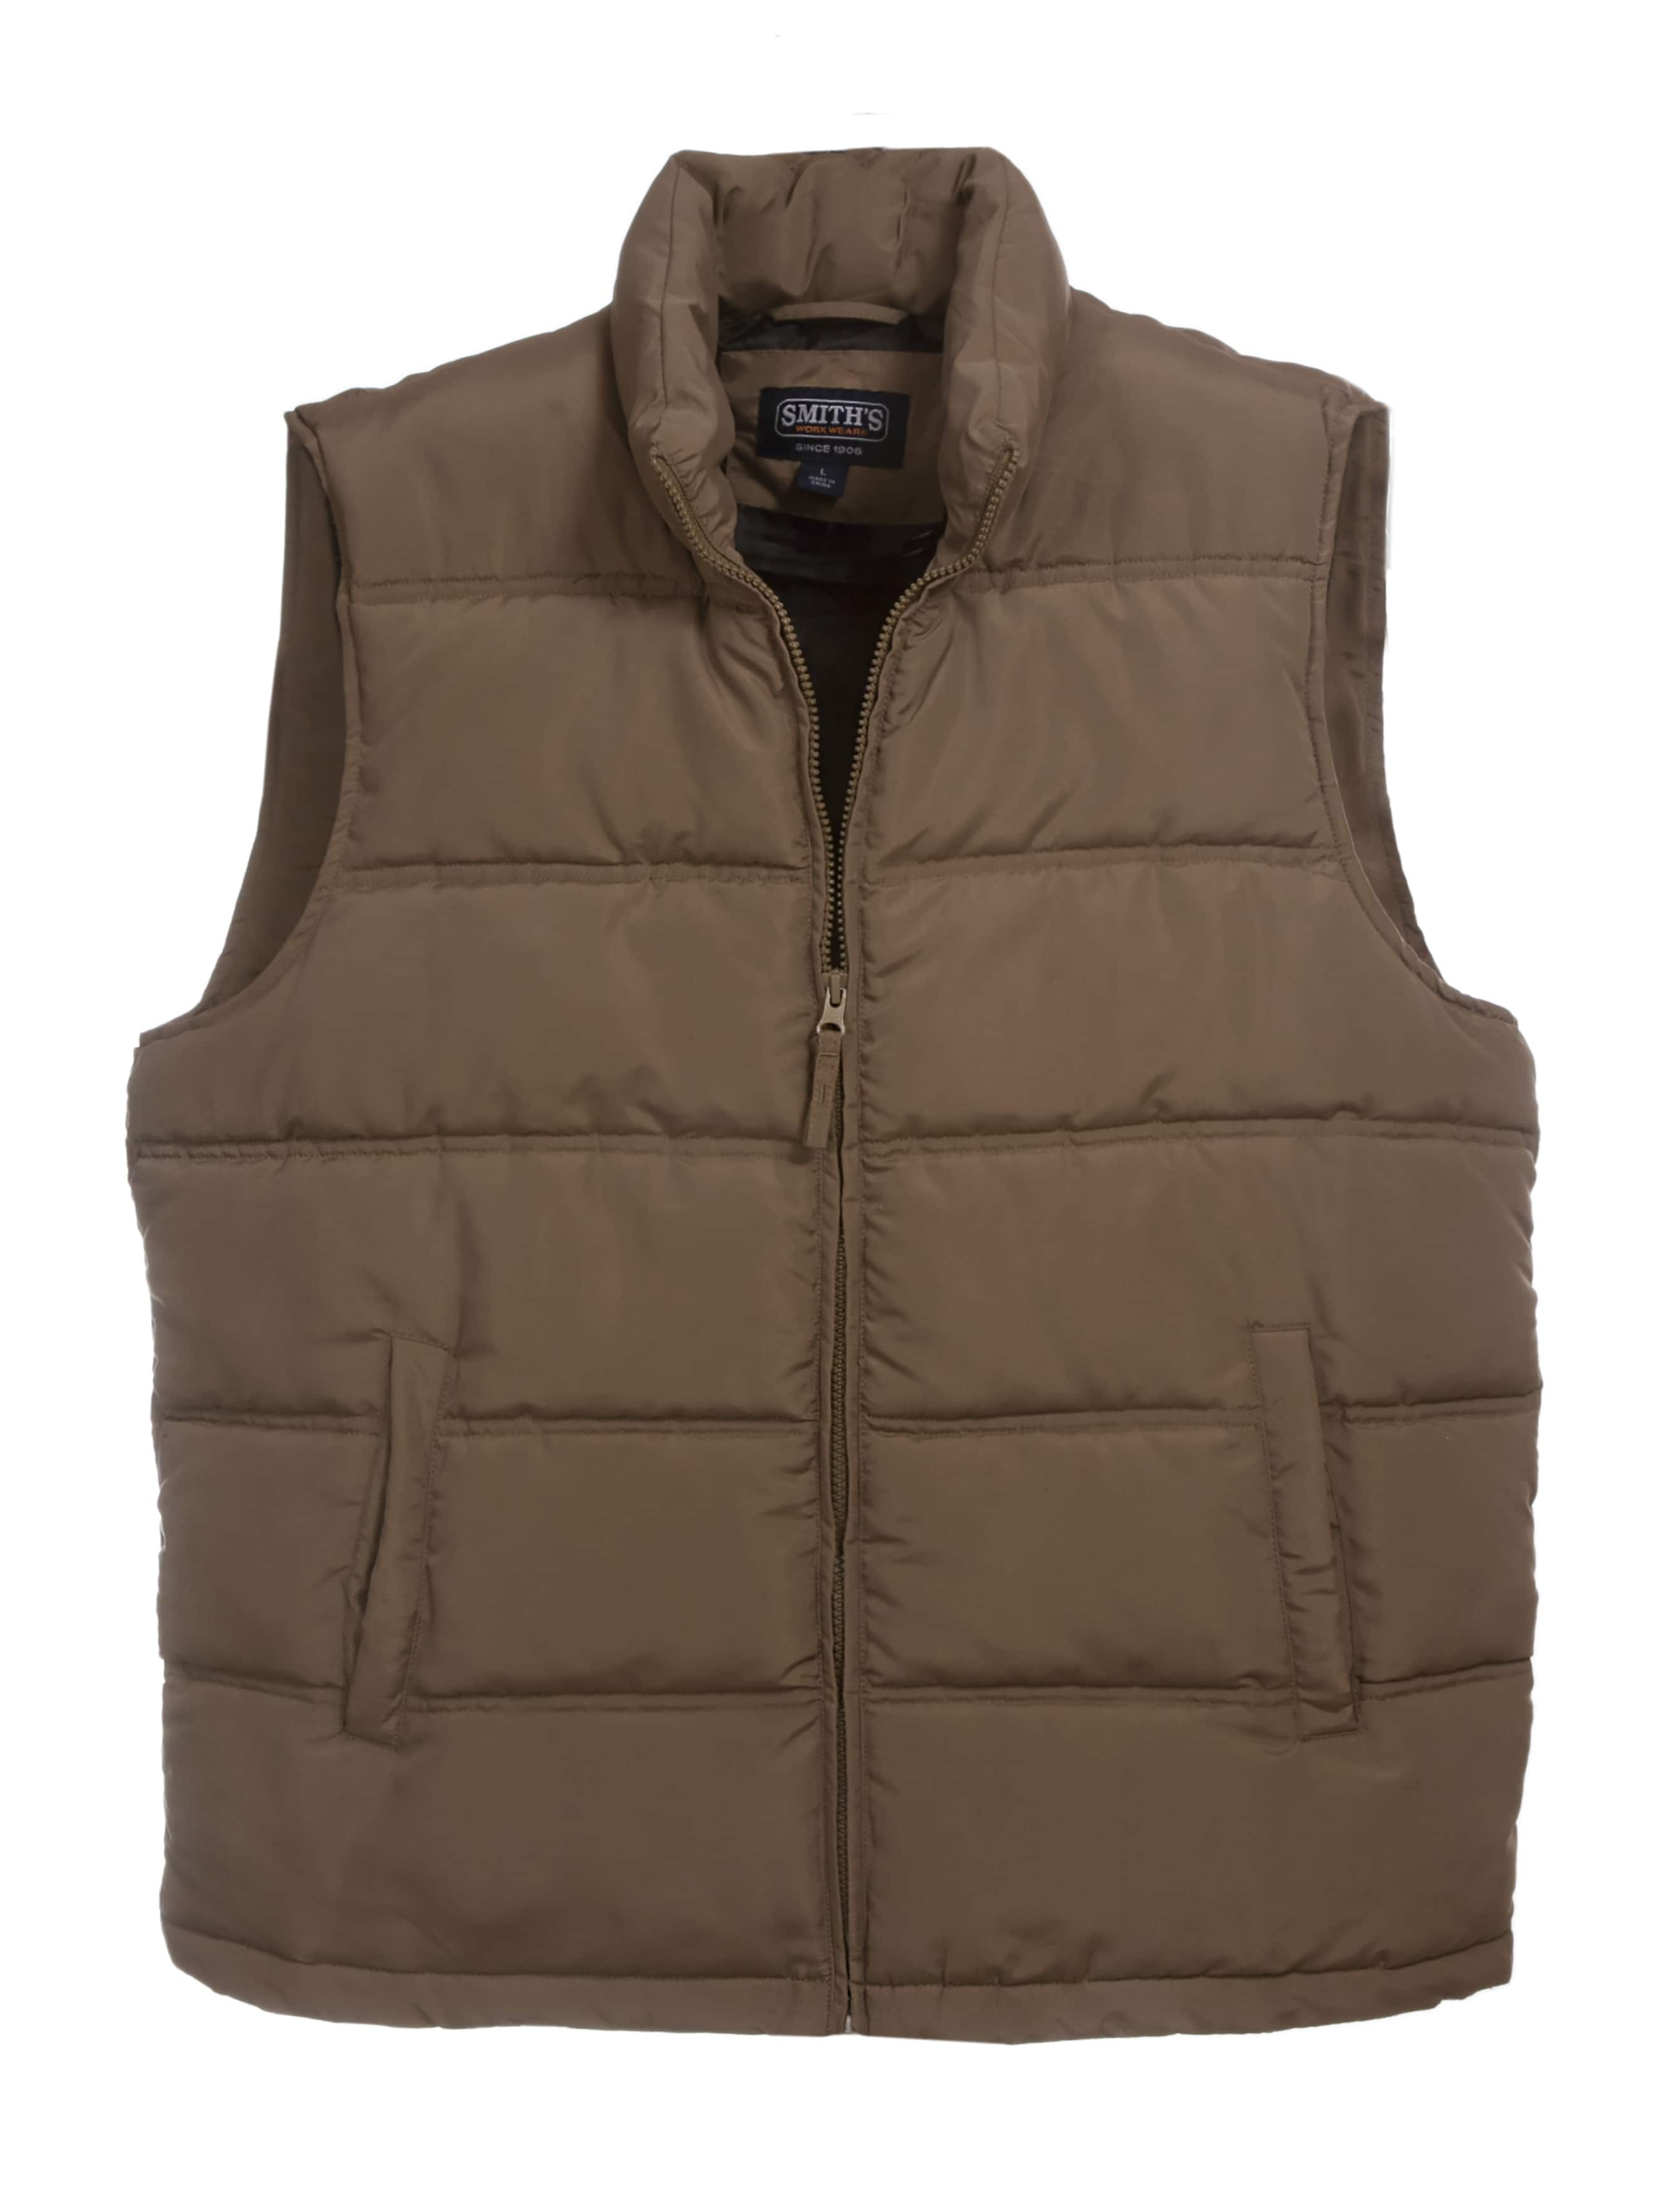 Men's Double Insulated Puffer Vest